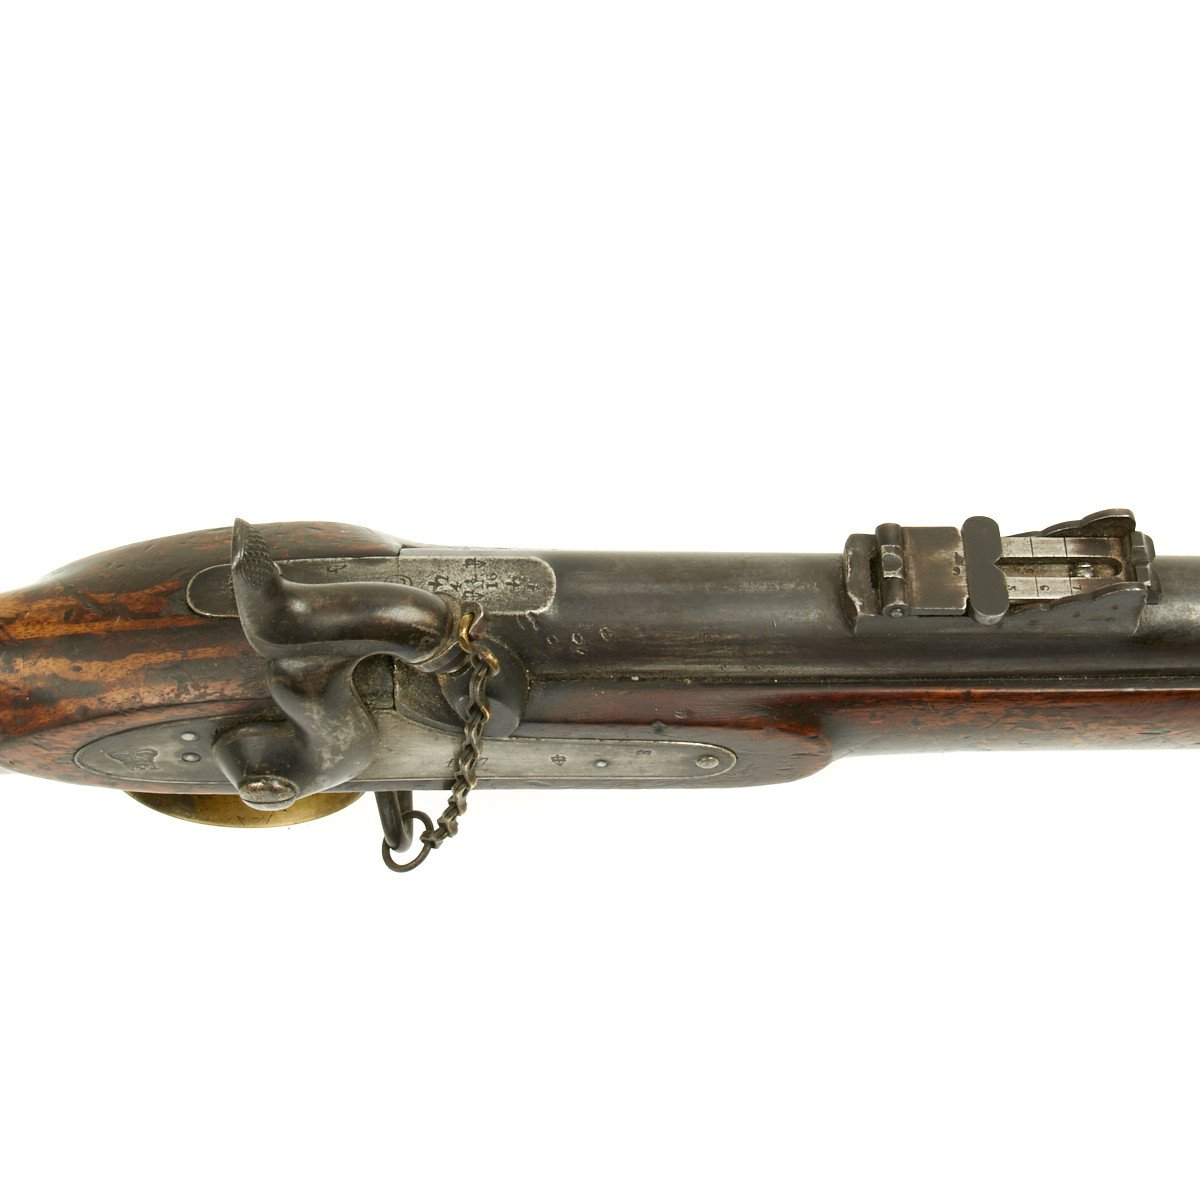 Original British P-1853 Enfield Rifle Musket Produced in Belgium